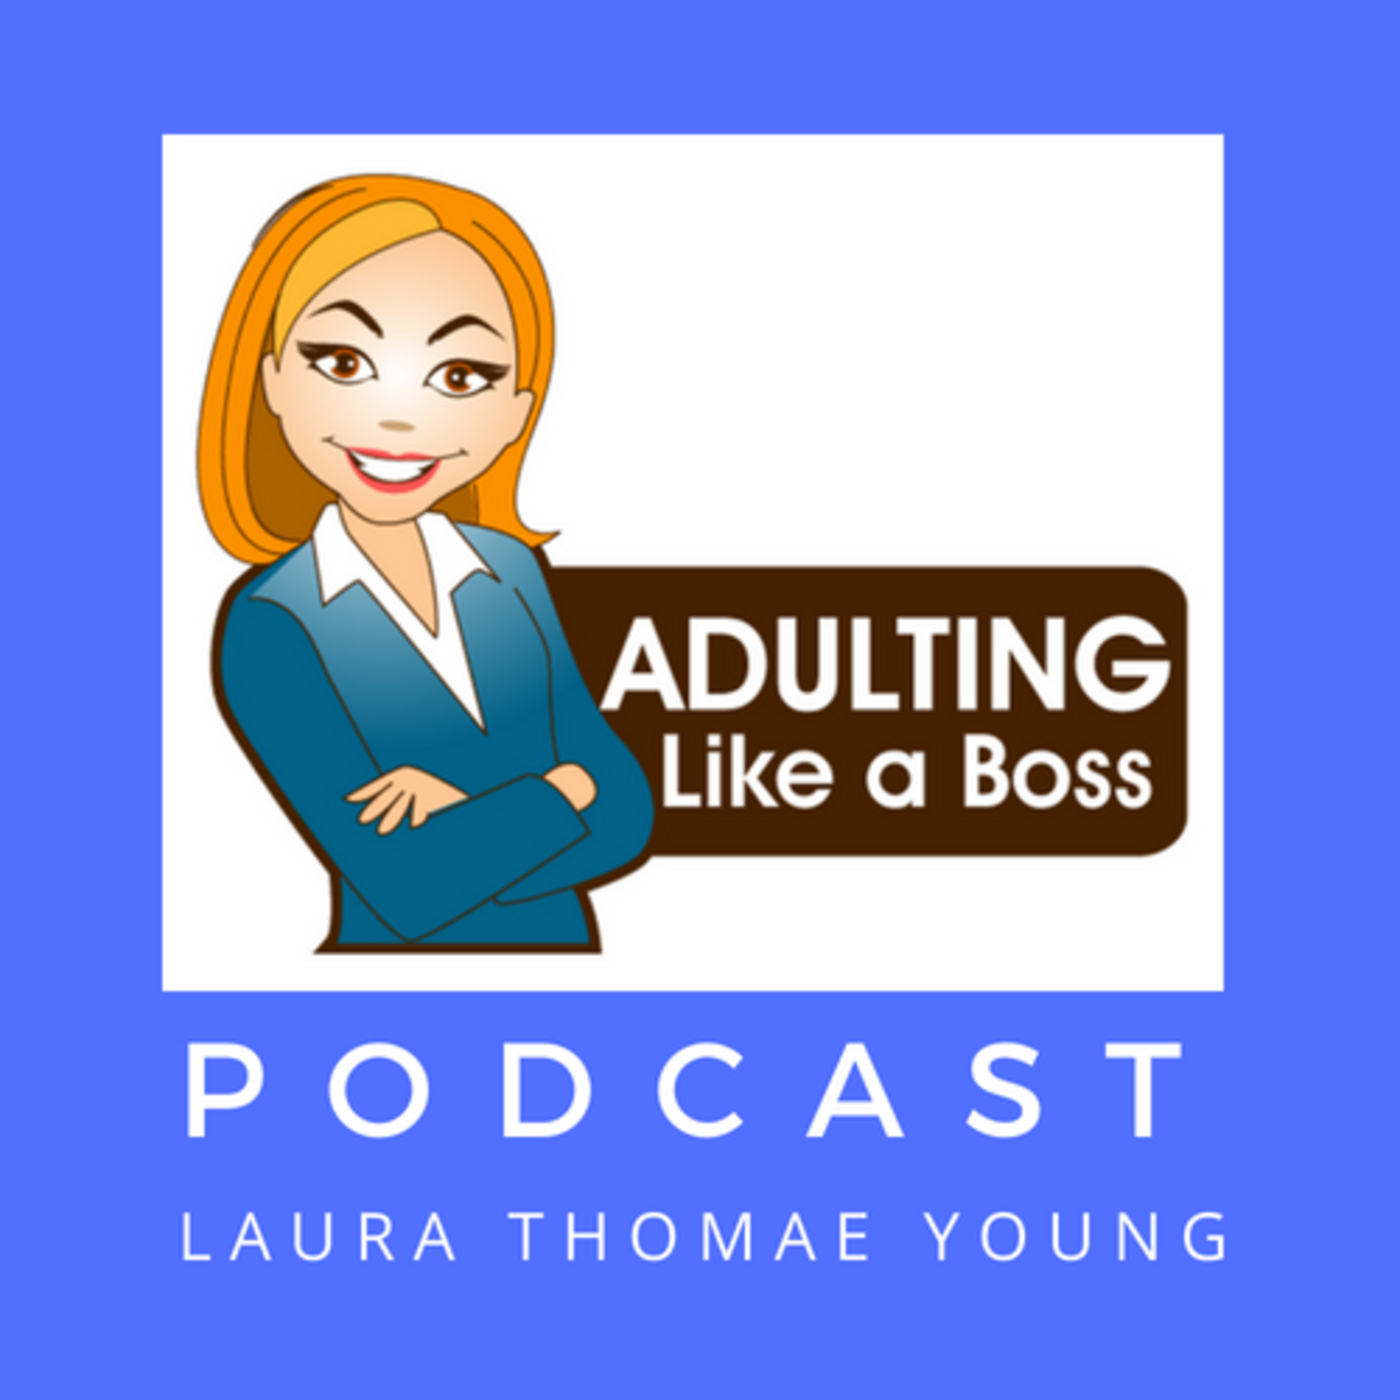 The Adulting Like a Boss Podcast logo